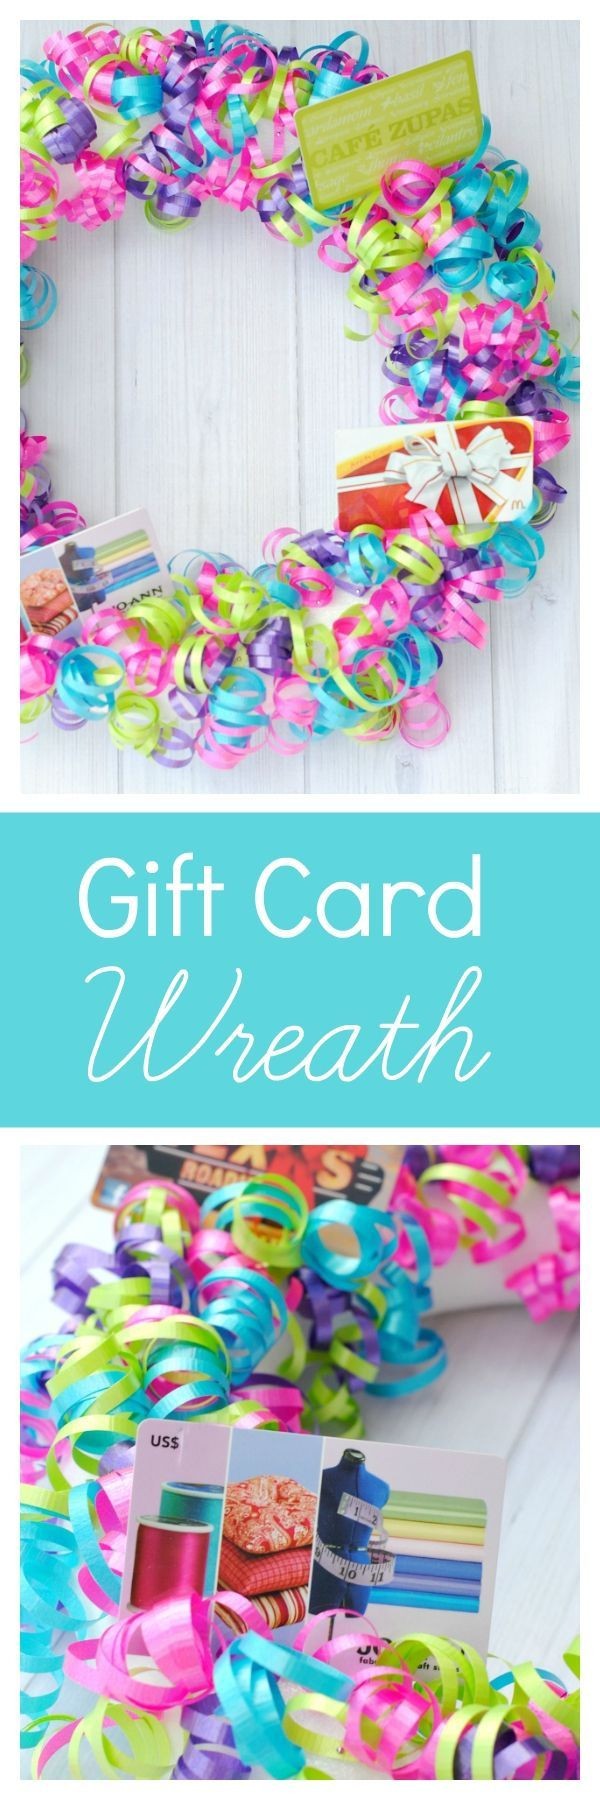 Best ideas about Creative Ideas For Presenting Gift Cards . Save or Pin Best 25 Gift card presentation ideas on Pinterest Now.